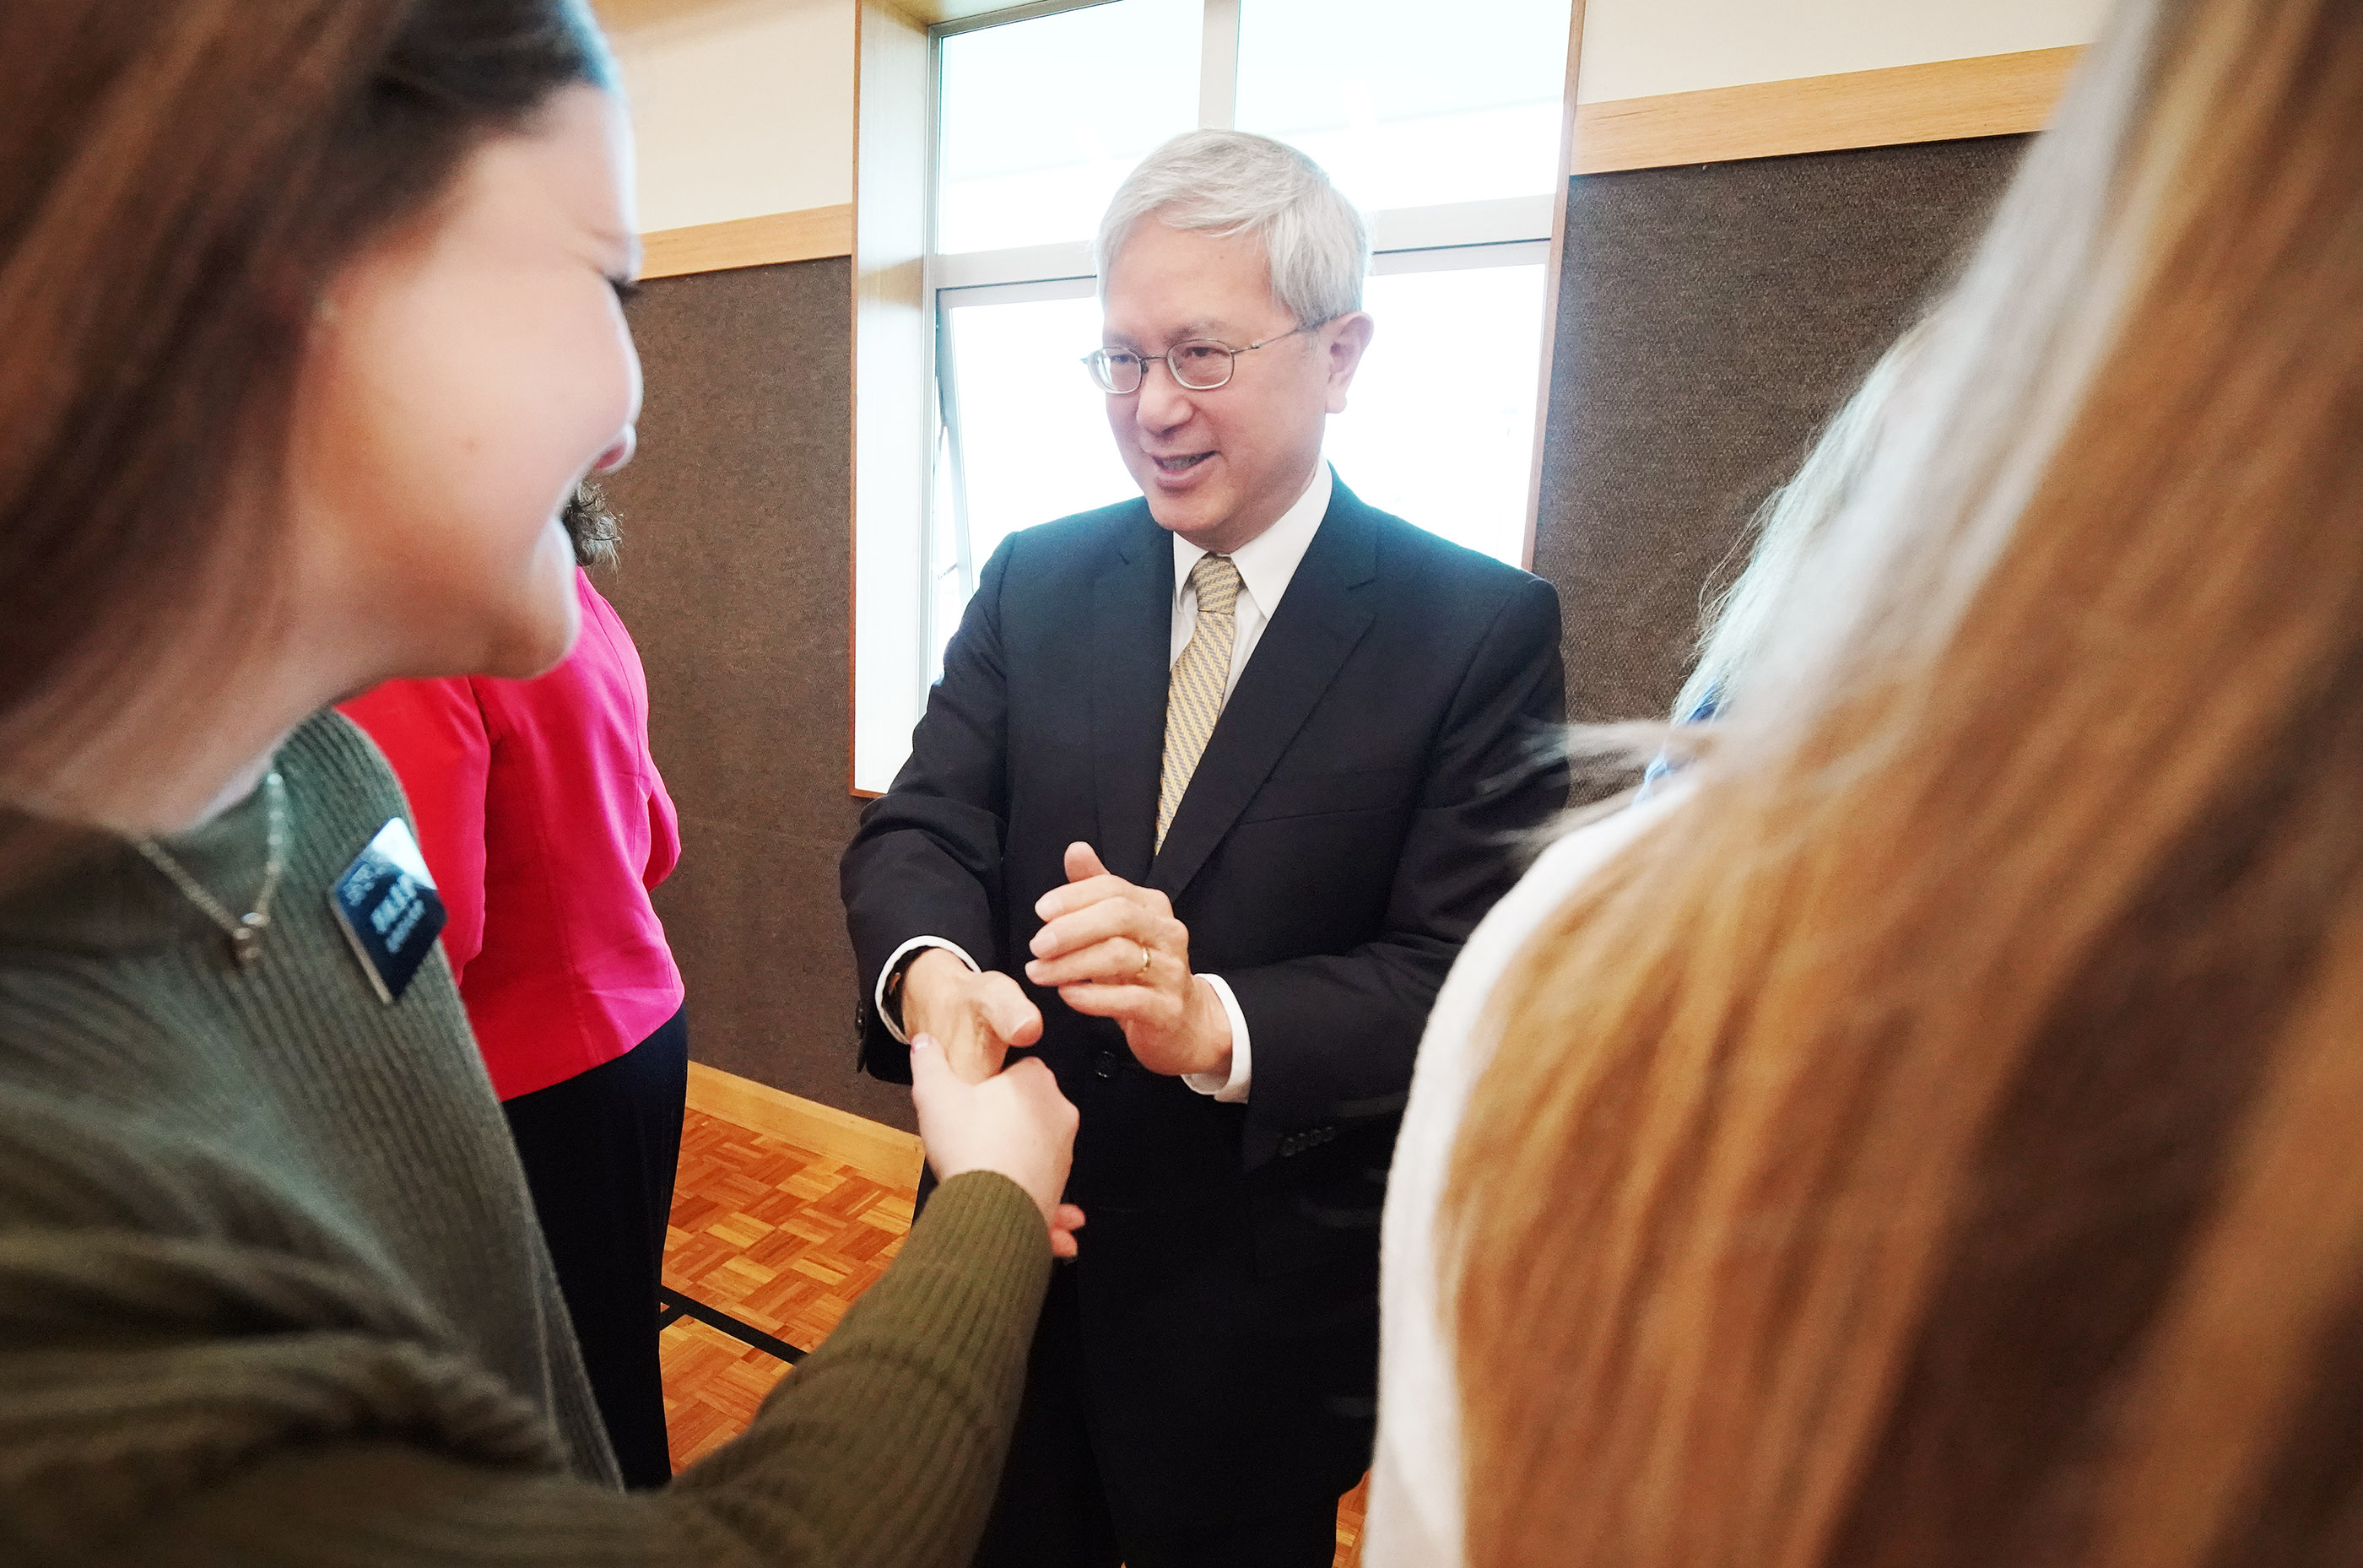 Elder Elder Gerrit W. Gong of The Church of Jesus Christ of Latter-day Saints' Quorum of the Twelve Apostles meets with missionaries in Auckland, New Zealand on Tuesday, May 21, 2019.